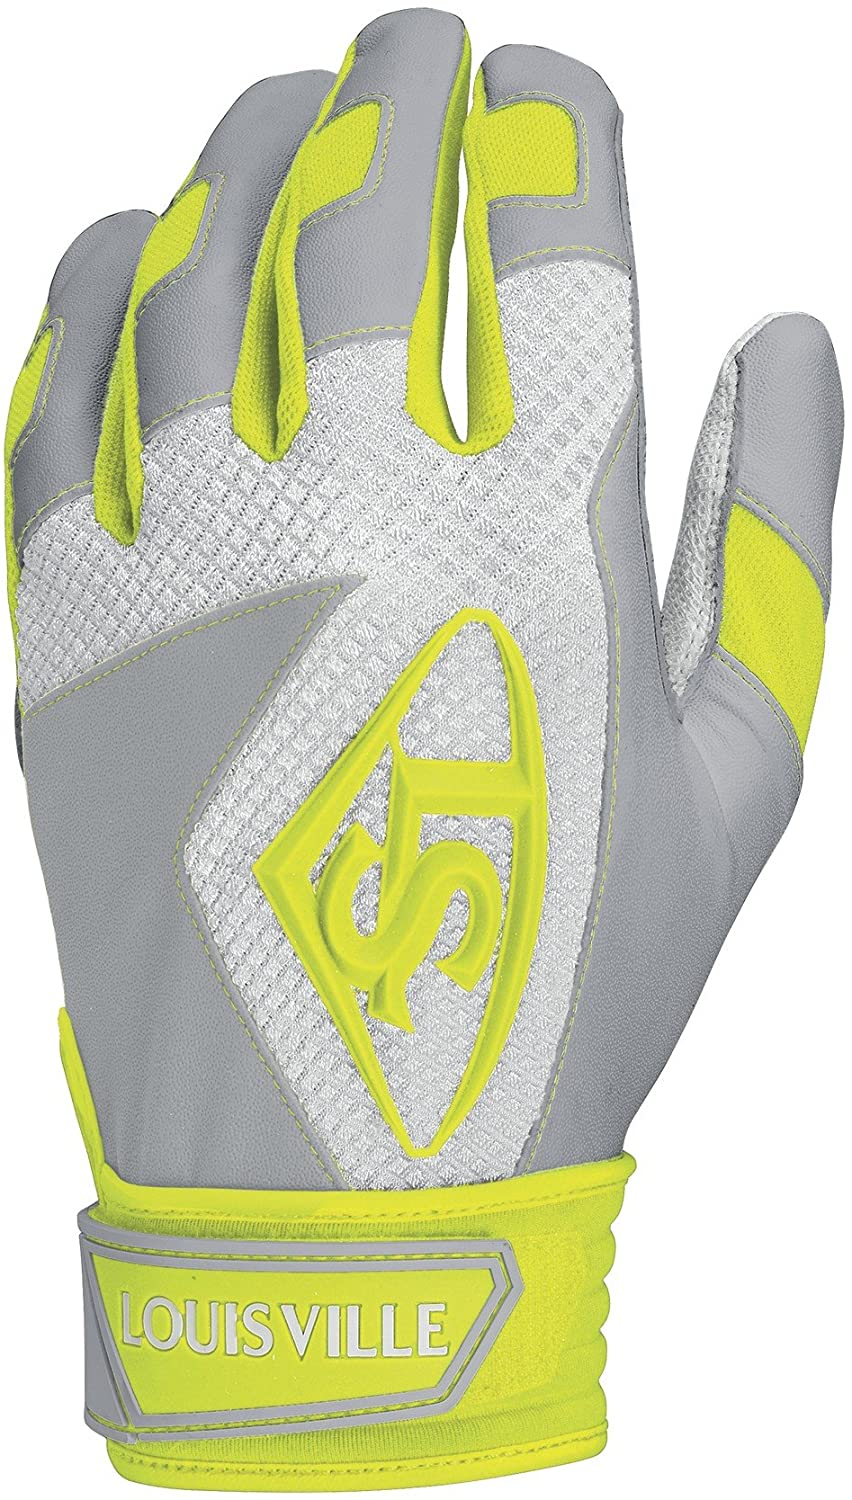 louisville-slugger-series-7-batting-glove-optic-large WTL6101OPL   Louisville Sluggers Series 7 batting gloves are built for the elite